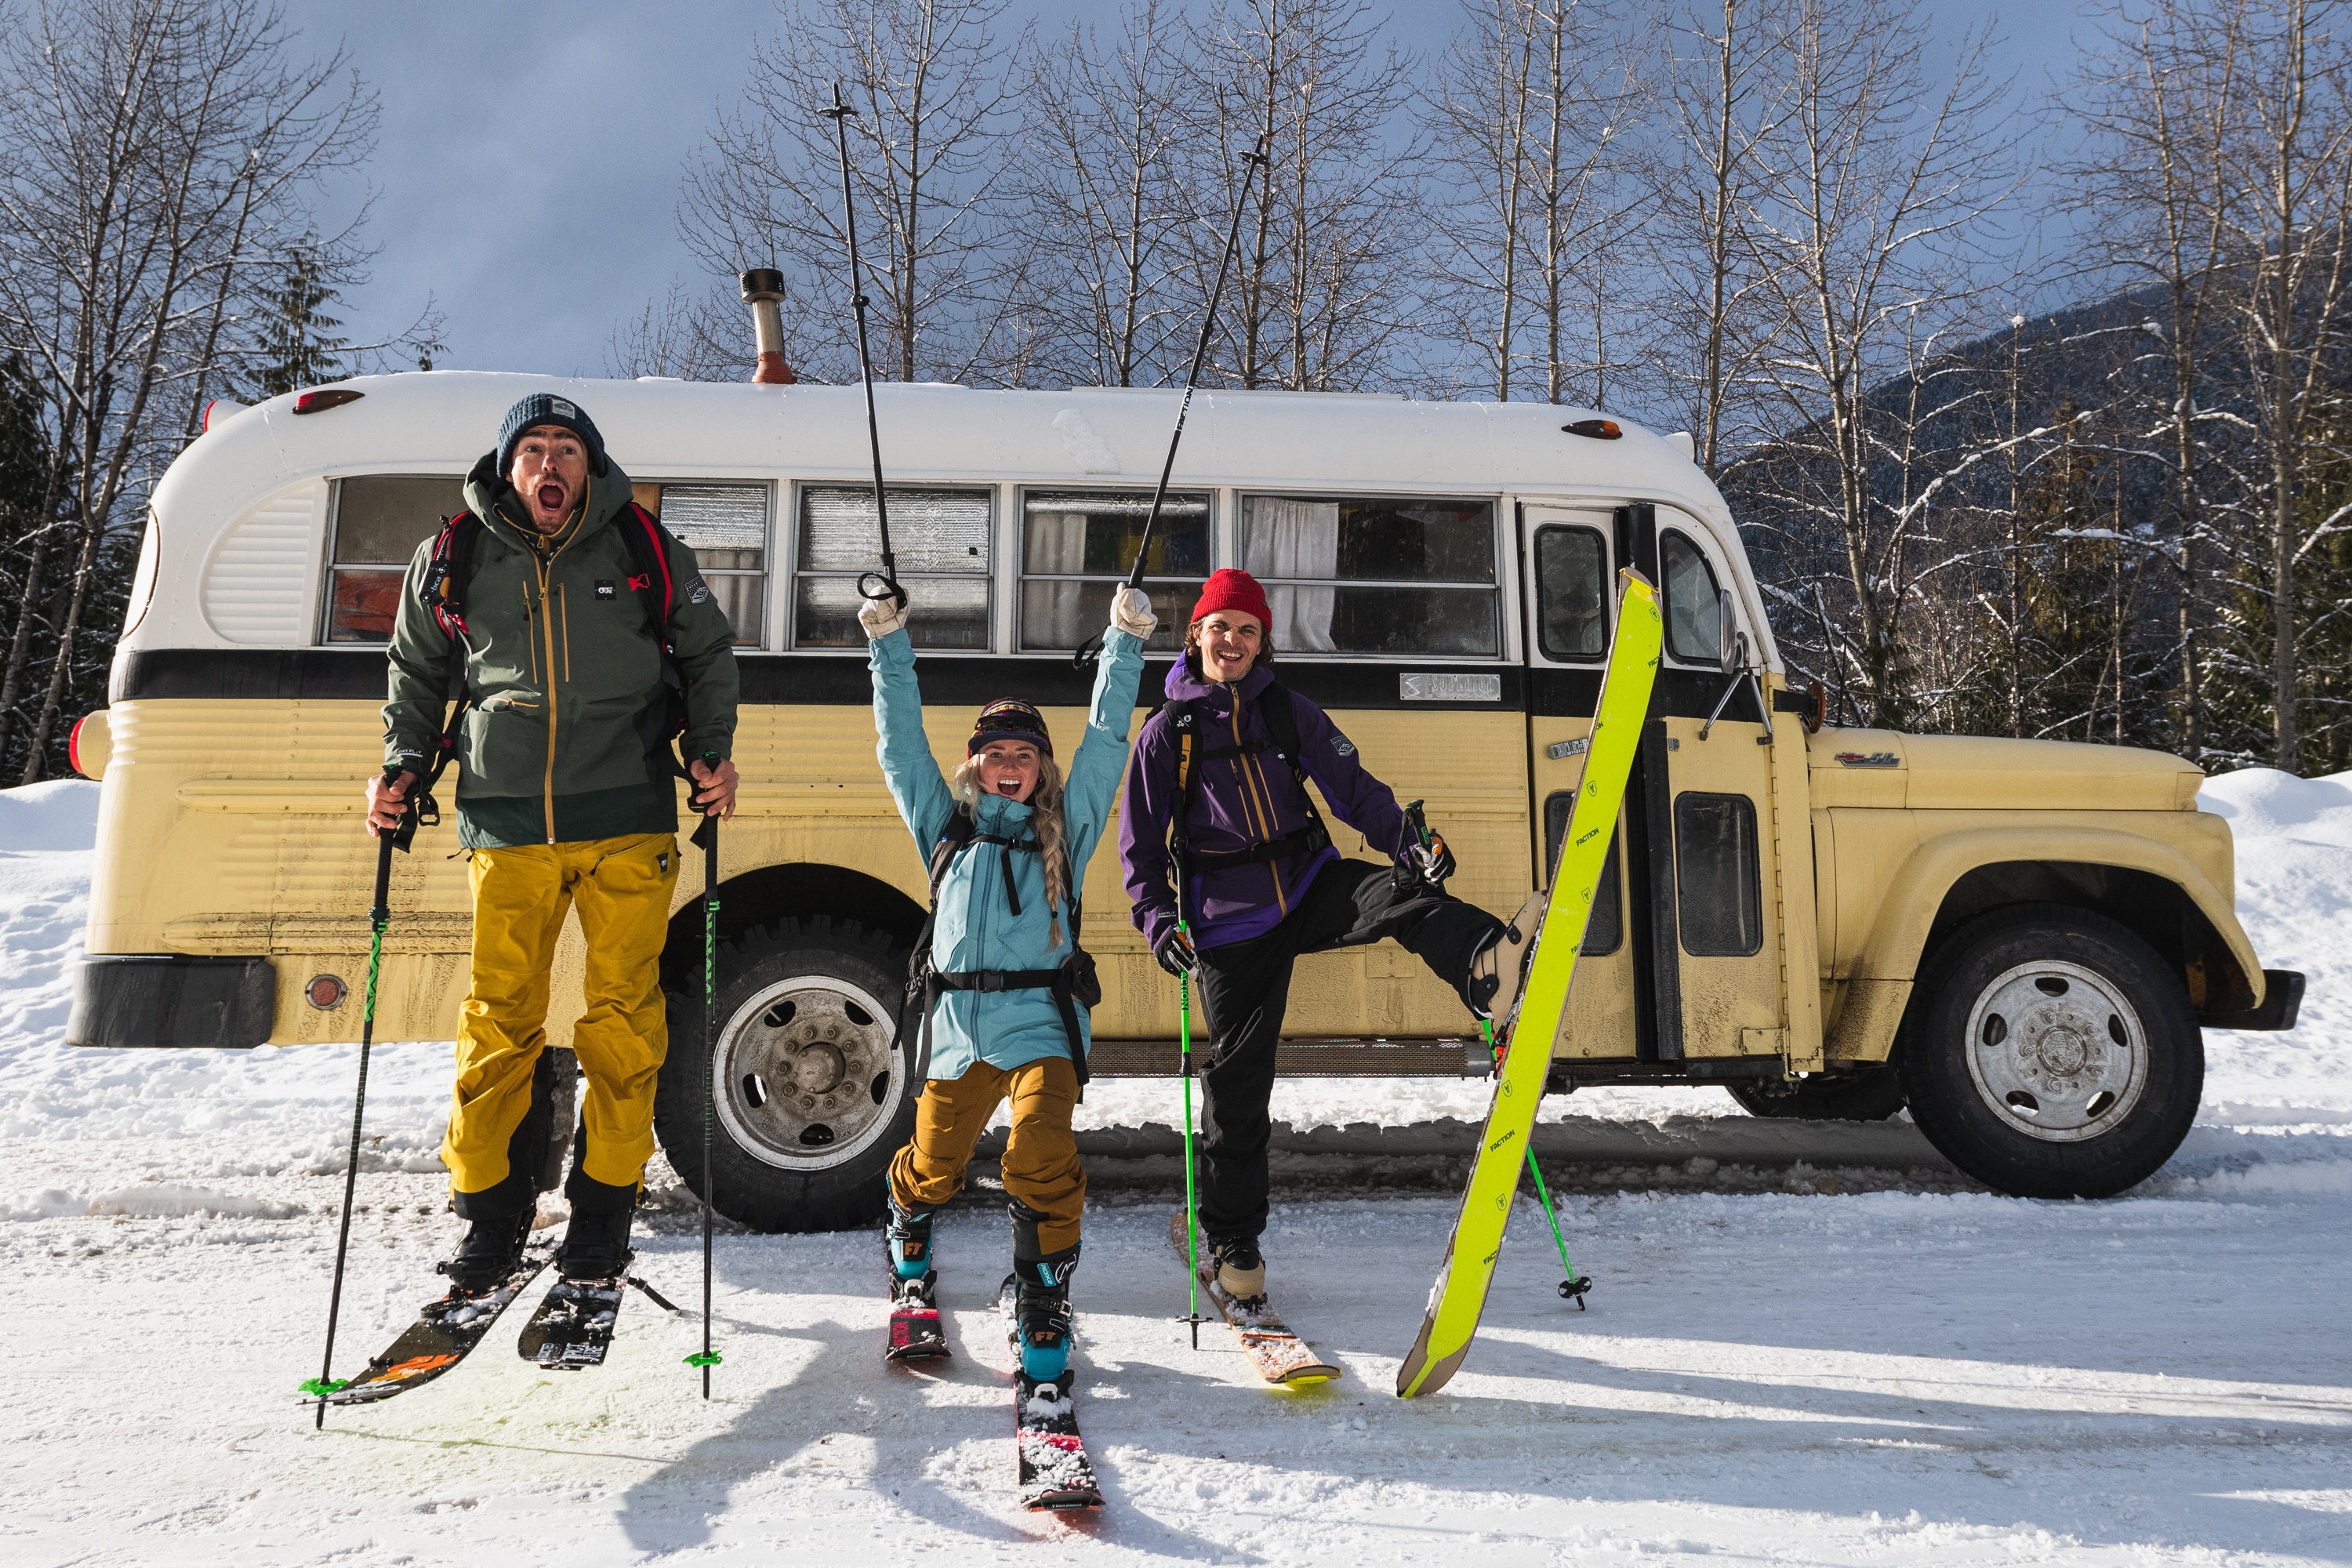 ski film picture organic clothing made in voyage winter stoked matthew tufts